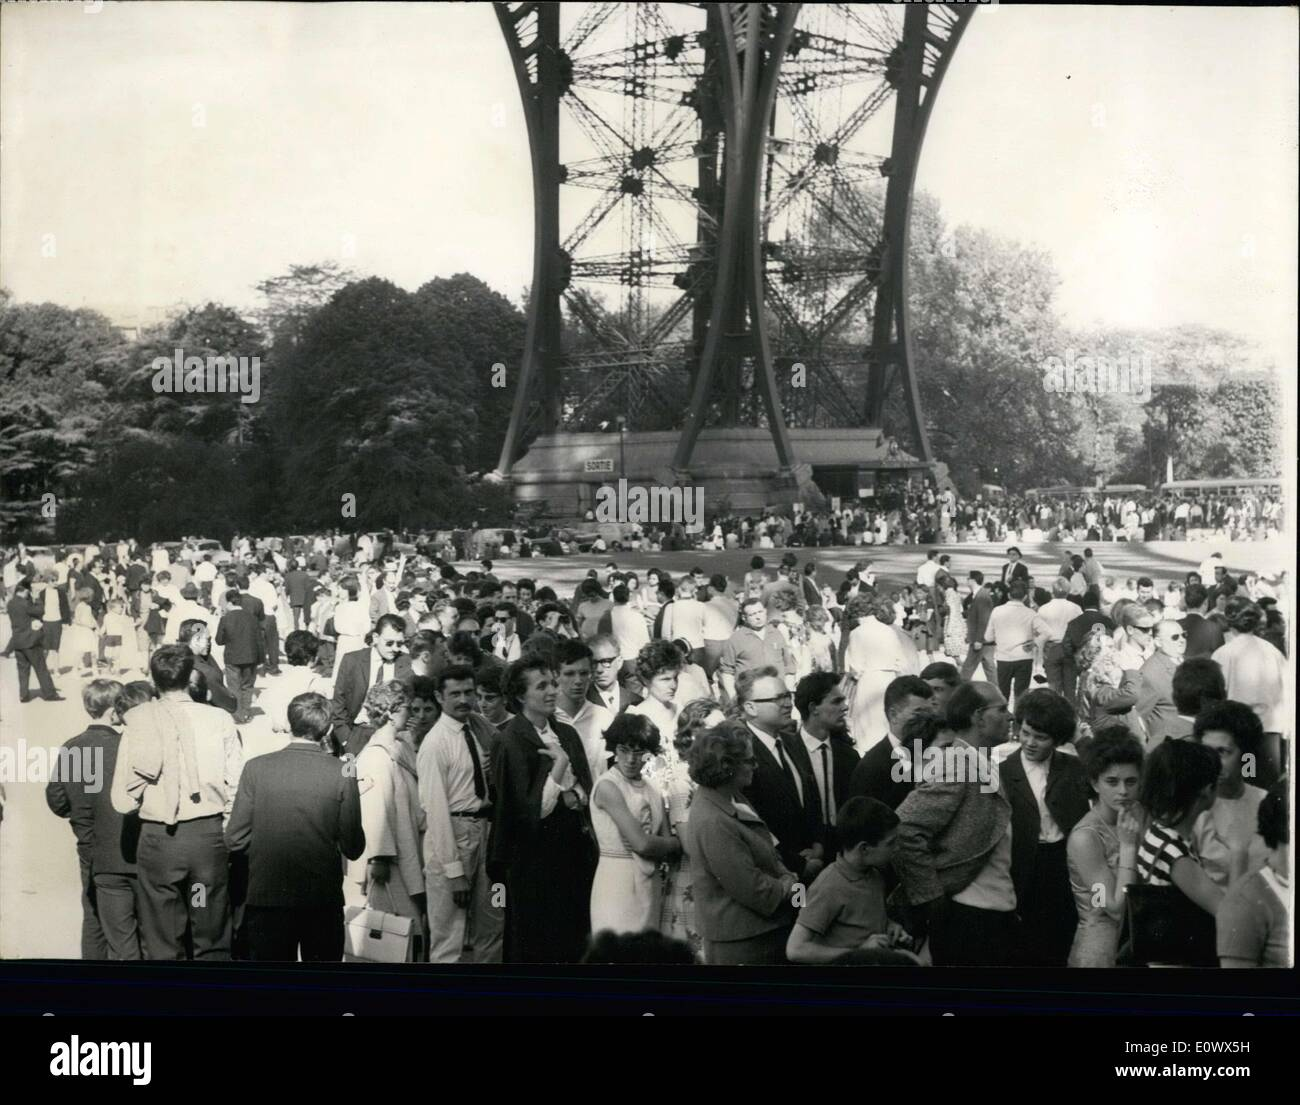 May 17, 1964 - Visitors at the Eiffel Tower - Stock Image